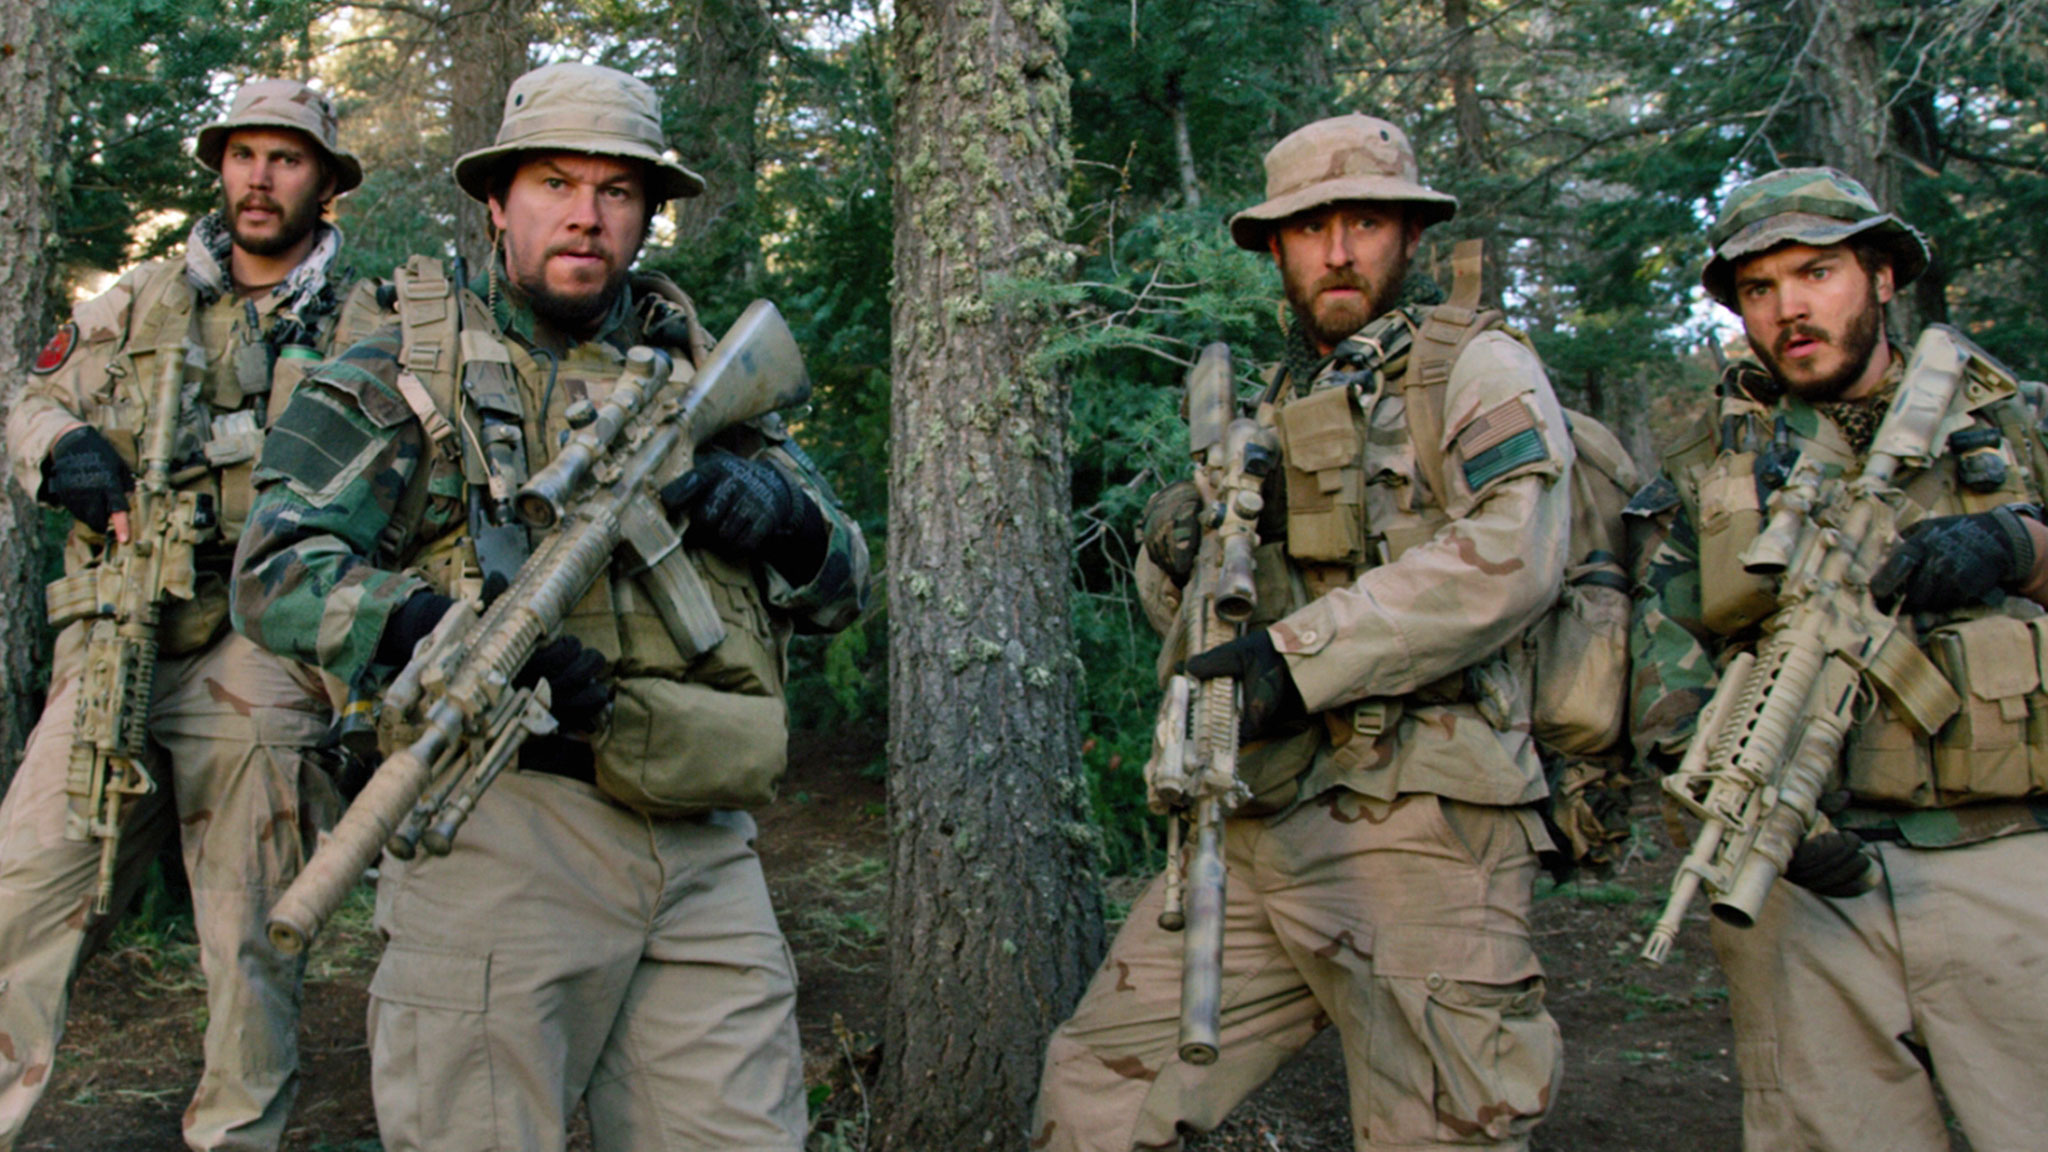 Taylor Kitsch, Mark Wahlberg, Ben Foster and Emile Hirsch in 'Lone Survivor' (Photo: Universal Pictures)